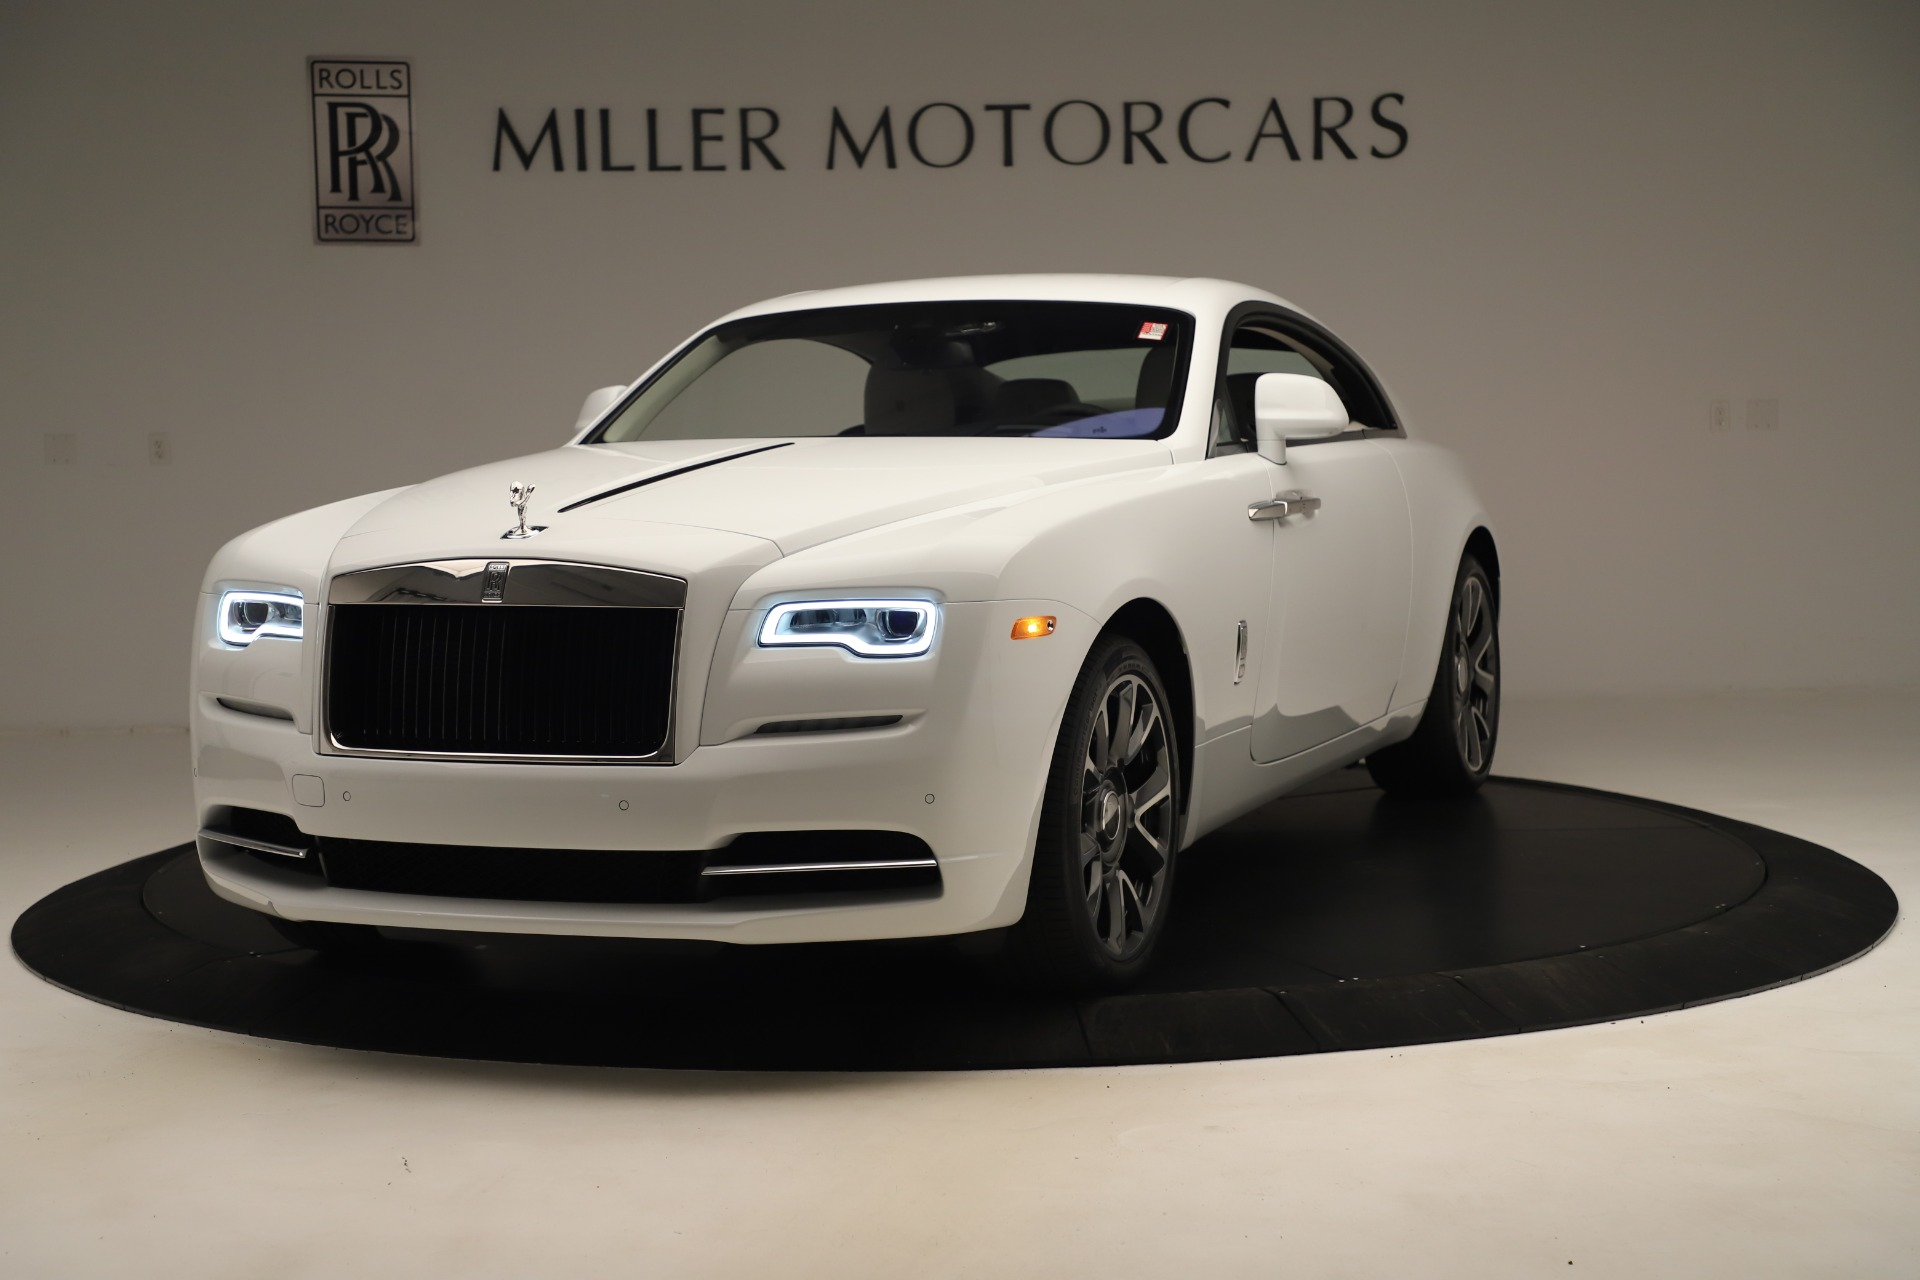 New 2019 Rolls-Royce Wraith for sale $391,000 at Bentley Greenwich in Greenwich CT 06830 1